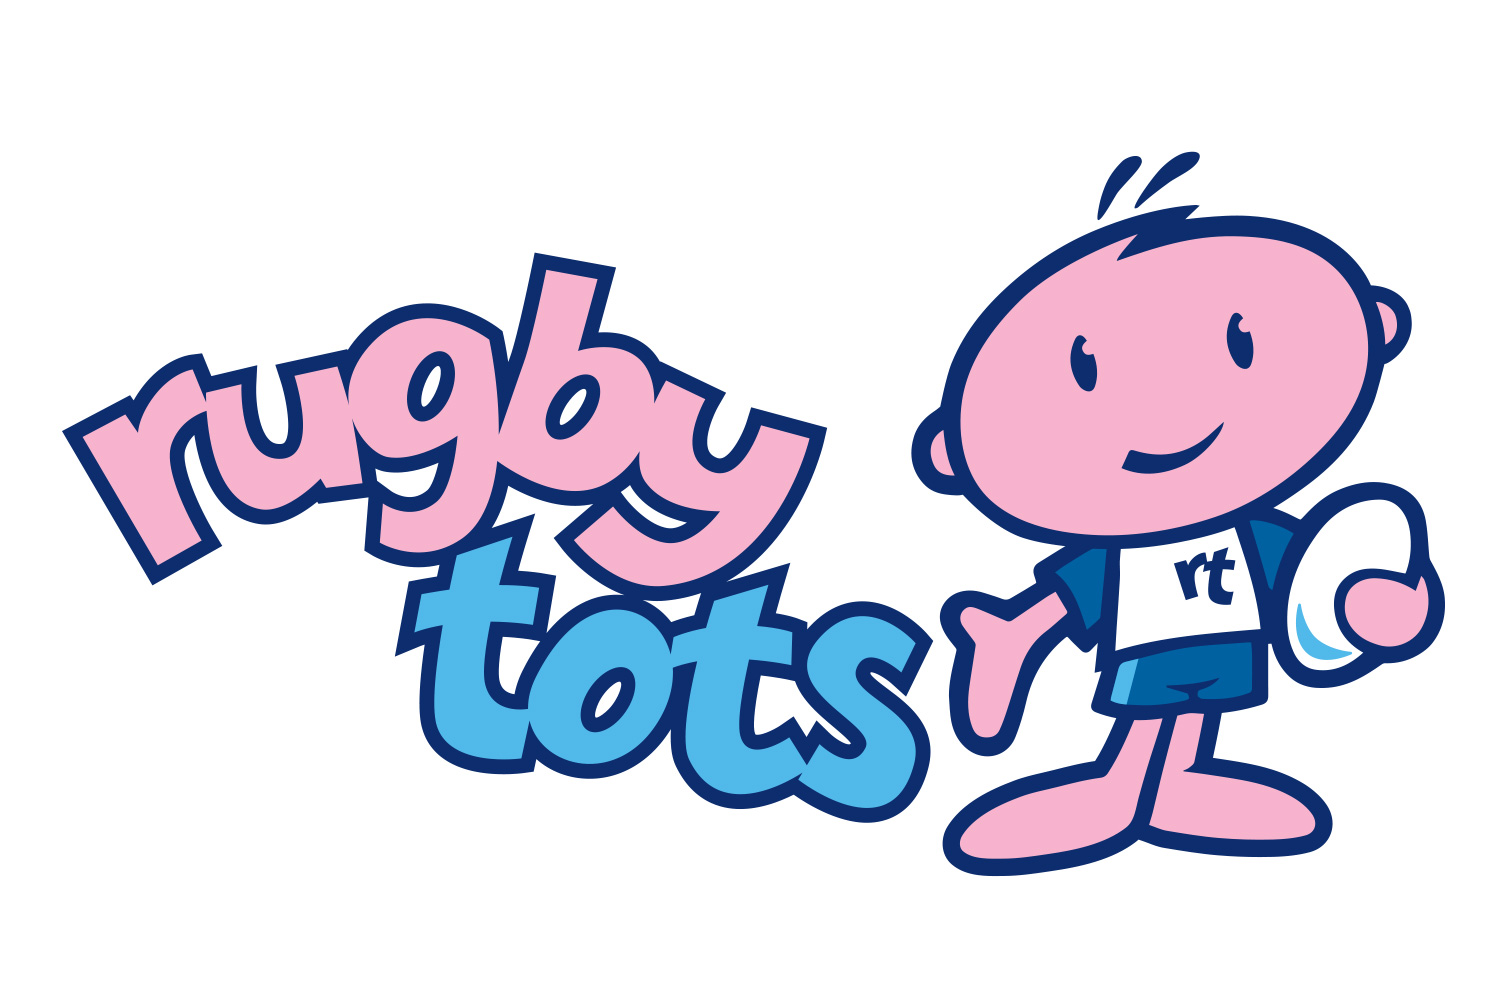 New Rugbytots logo